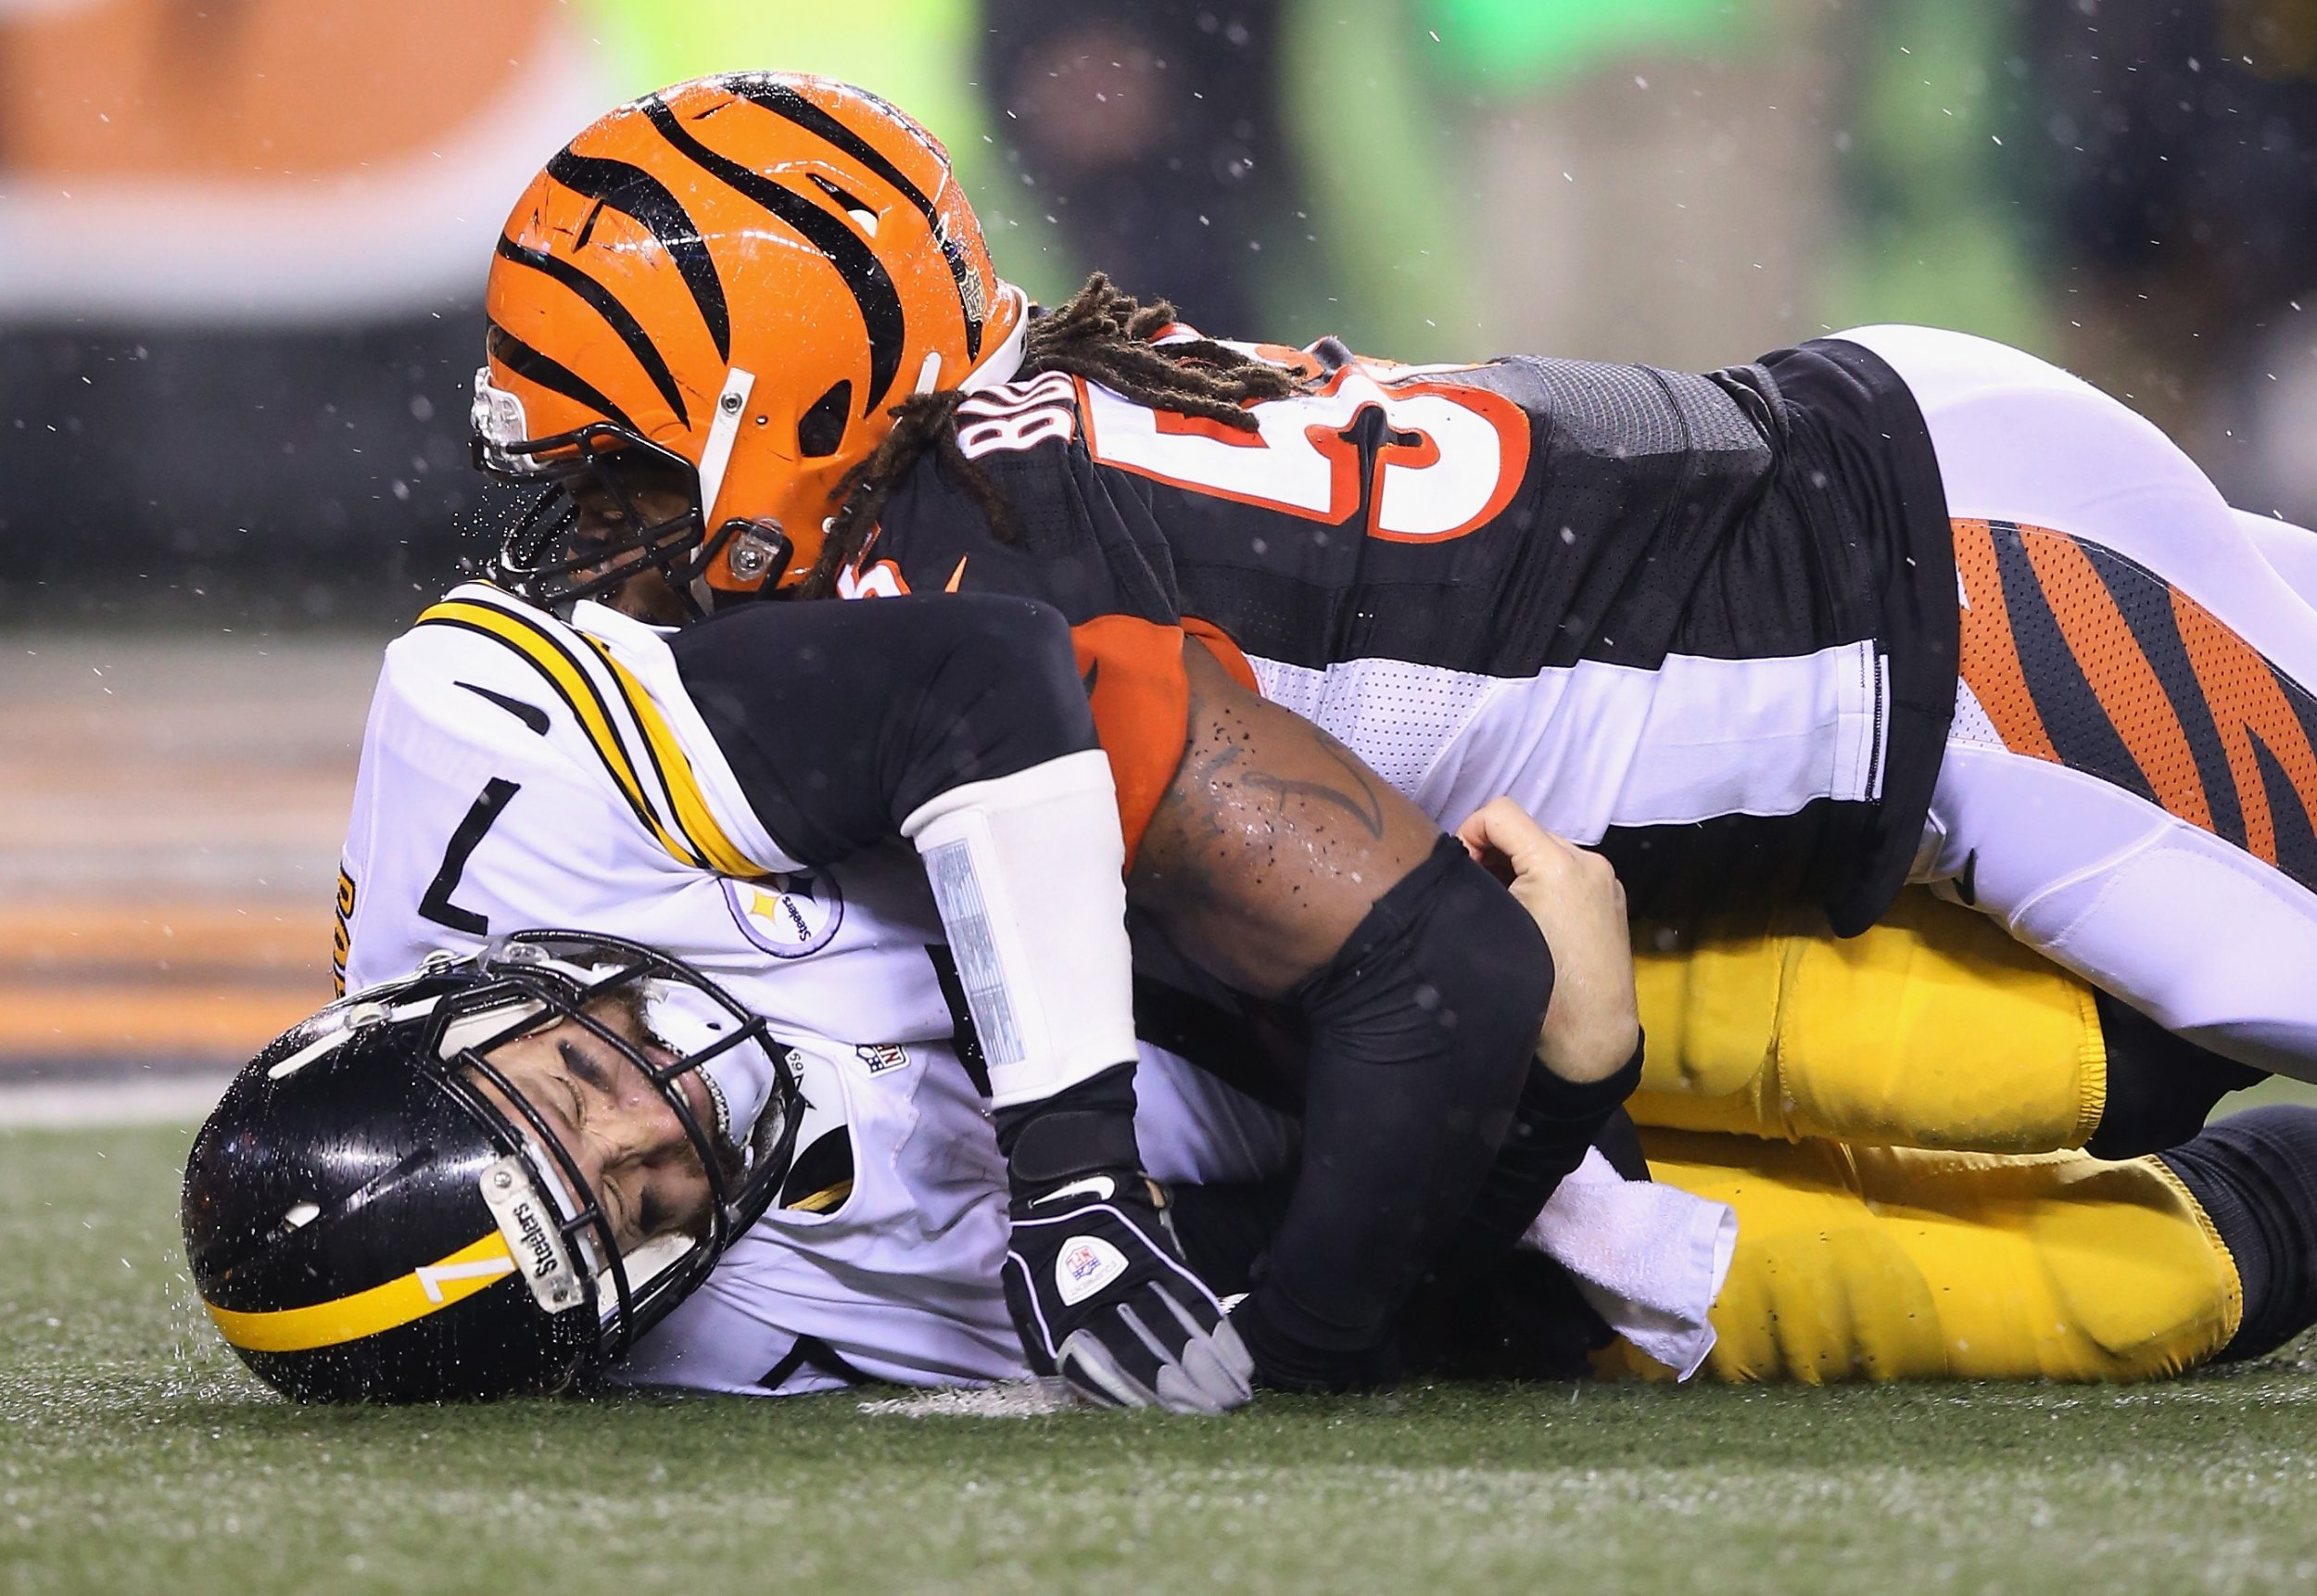 Vontaze Burfict of the Cincinnati Bengals, right, sacks Ben Roethlisberger of the Pittsburgh Steelers at Paul Brown Stadium, Cincinnati, Ohio, January 9 2016.